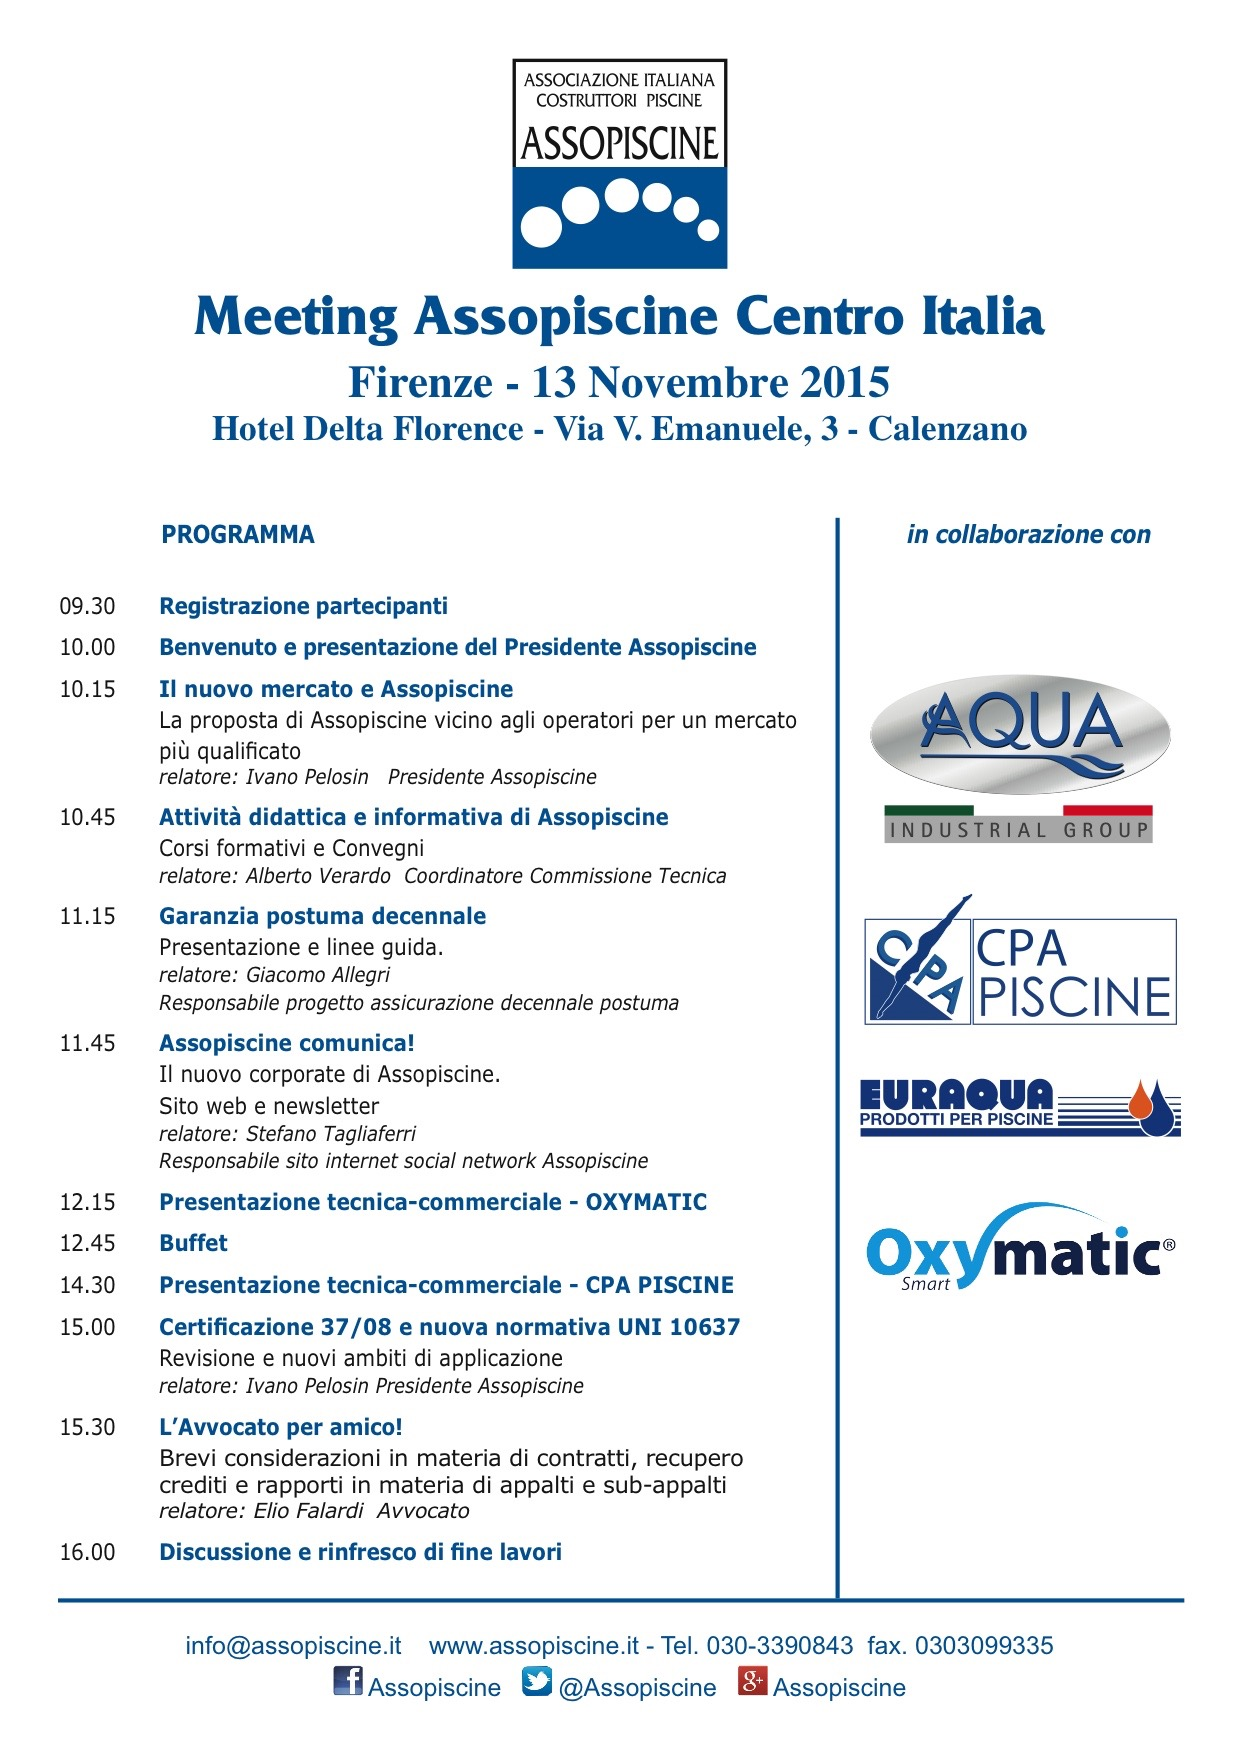 OXYMATIC MEETING FIRENZE